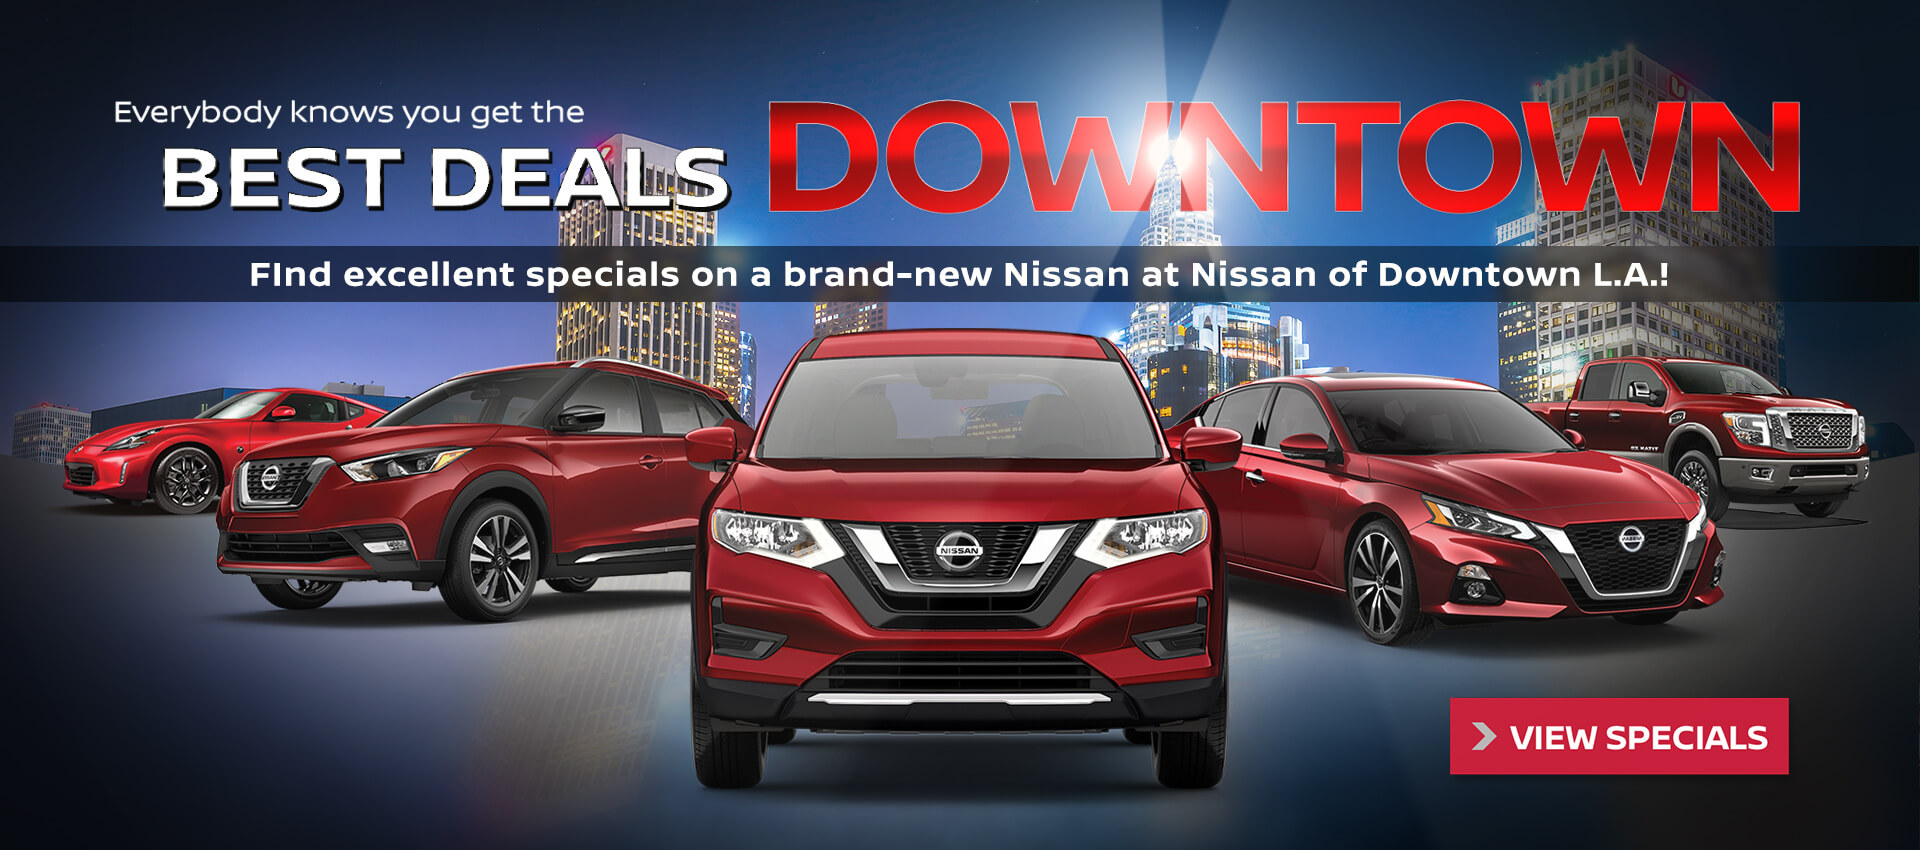 Nissan Dealership Los Angeles >> Nissan Dealer Los Angeles Hollywood Pasadena Glendale